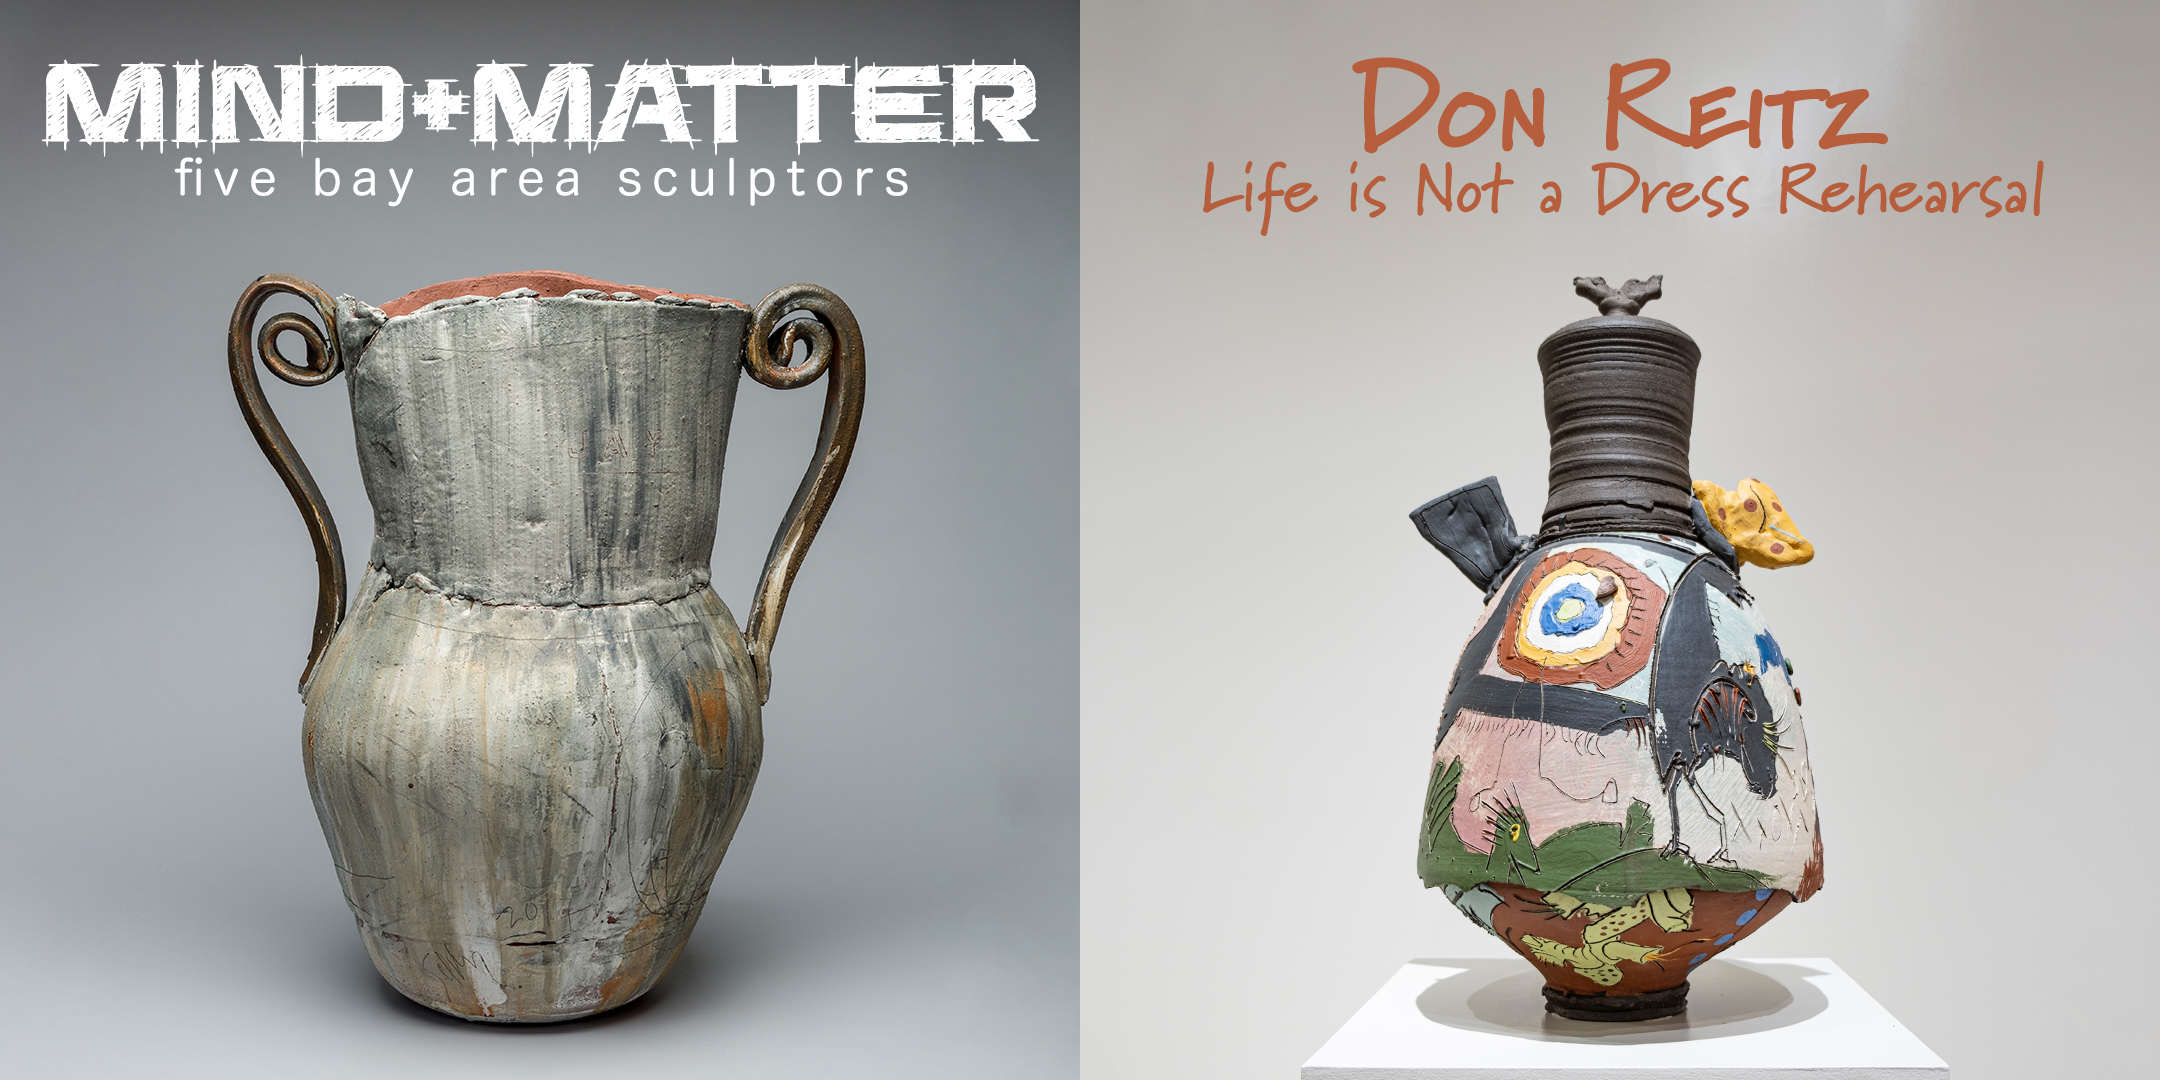 Images from MIND+MATTER and Don Reitz: Life is Not a Dress Rehearsal.